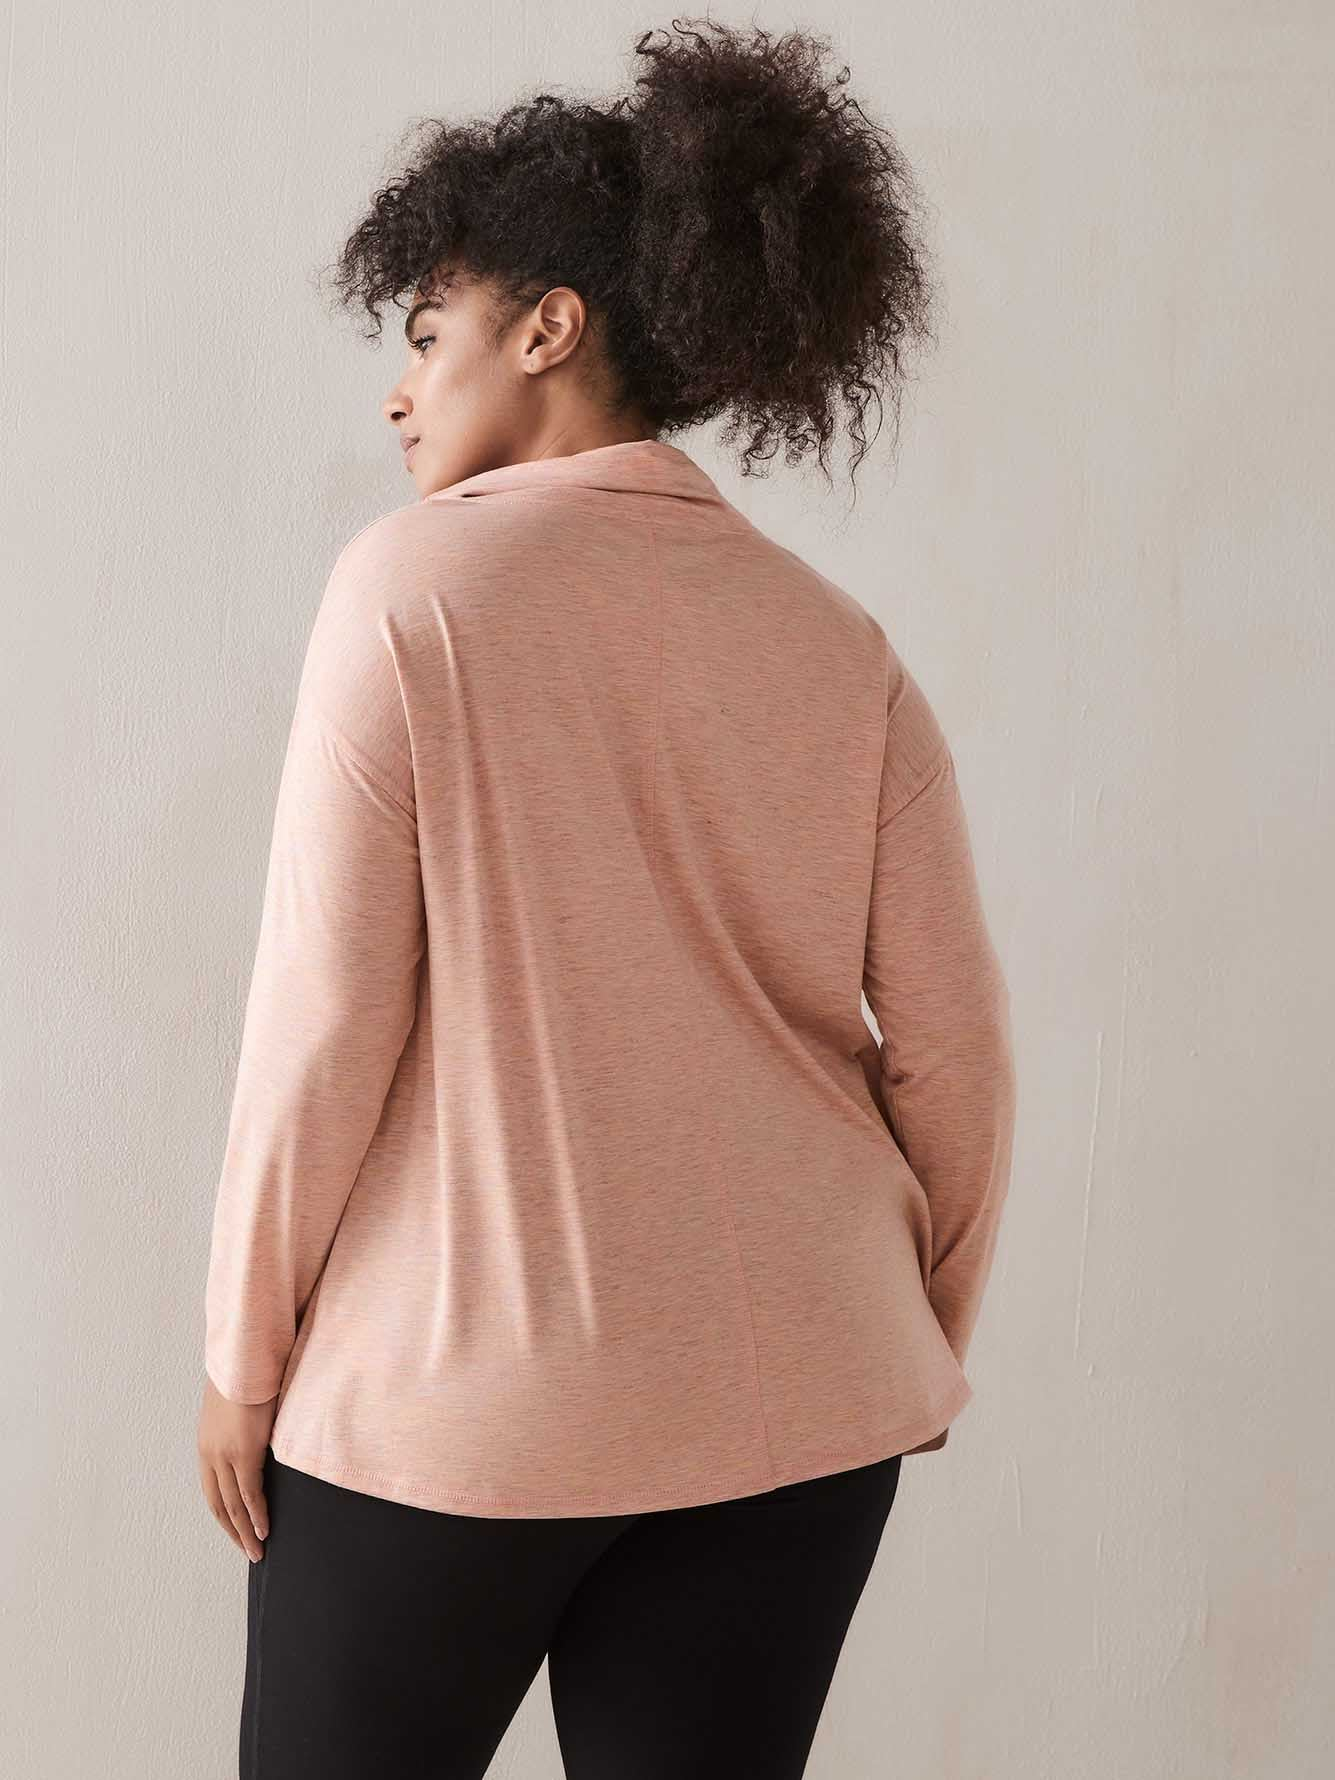 Long-Sleeve Cowl Neck Top - ActiveZone